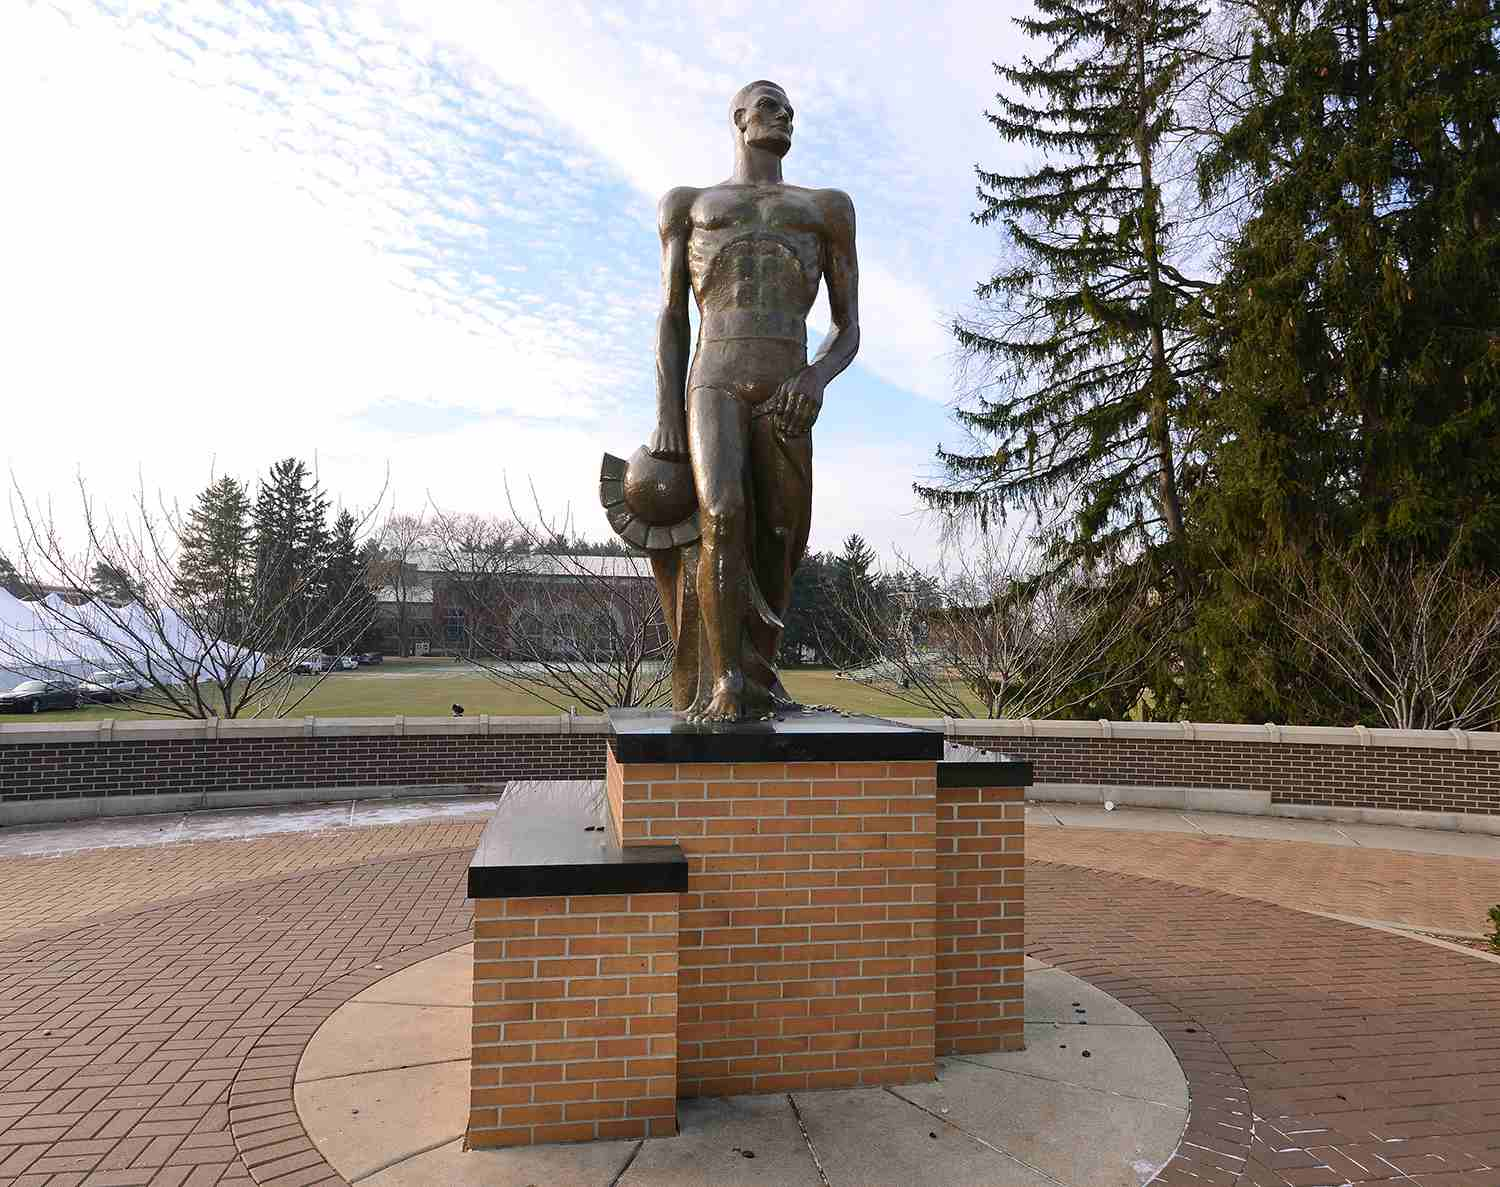 A detailed view of the Spartan statue on the campus of Michigan State University.